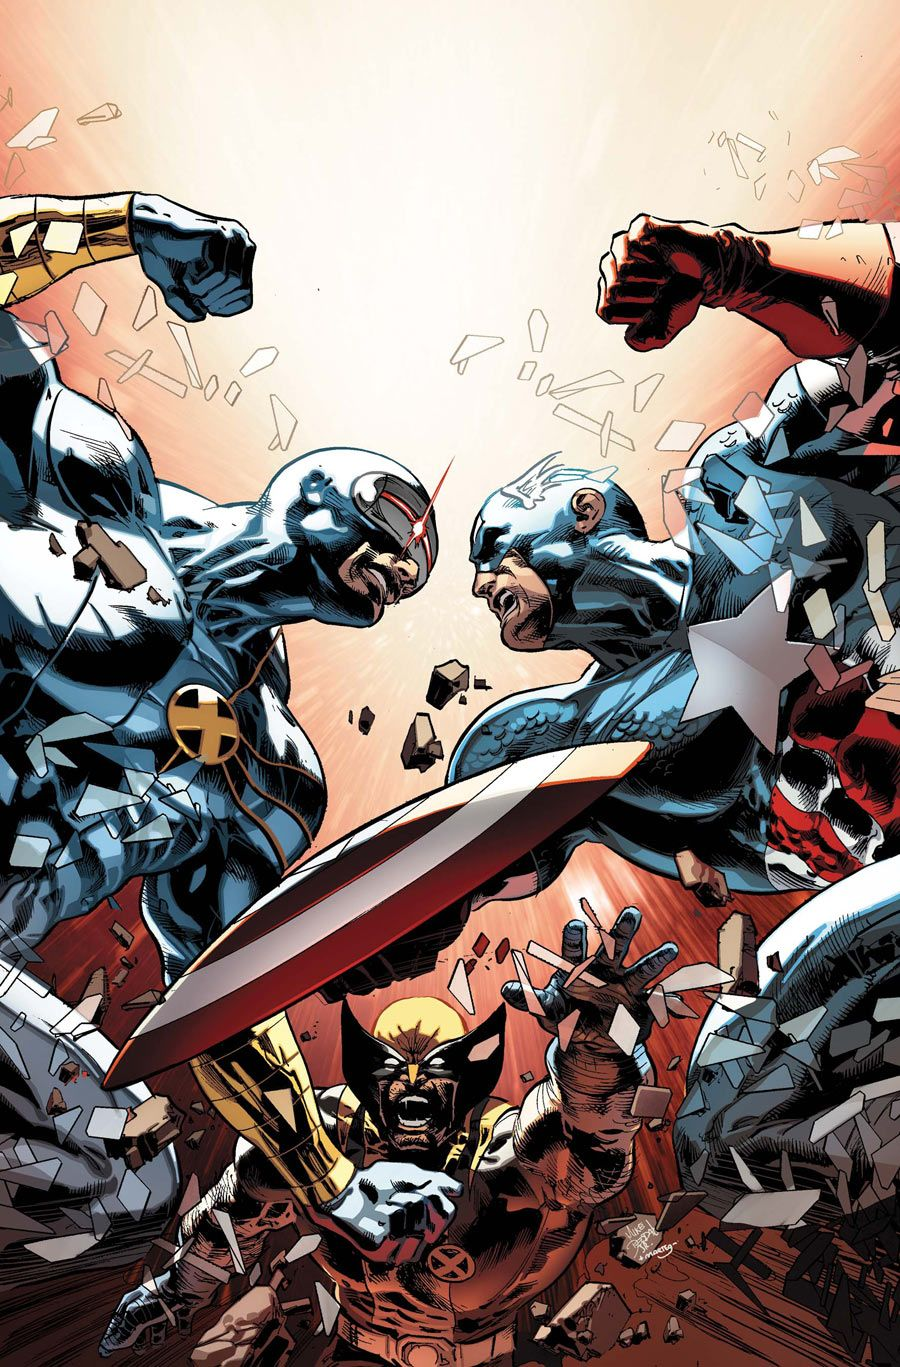 Cyclops vs Captain America by Mike Deodato Jr.